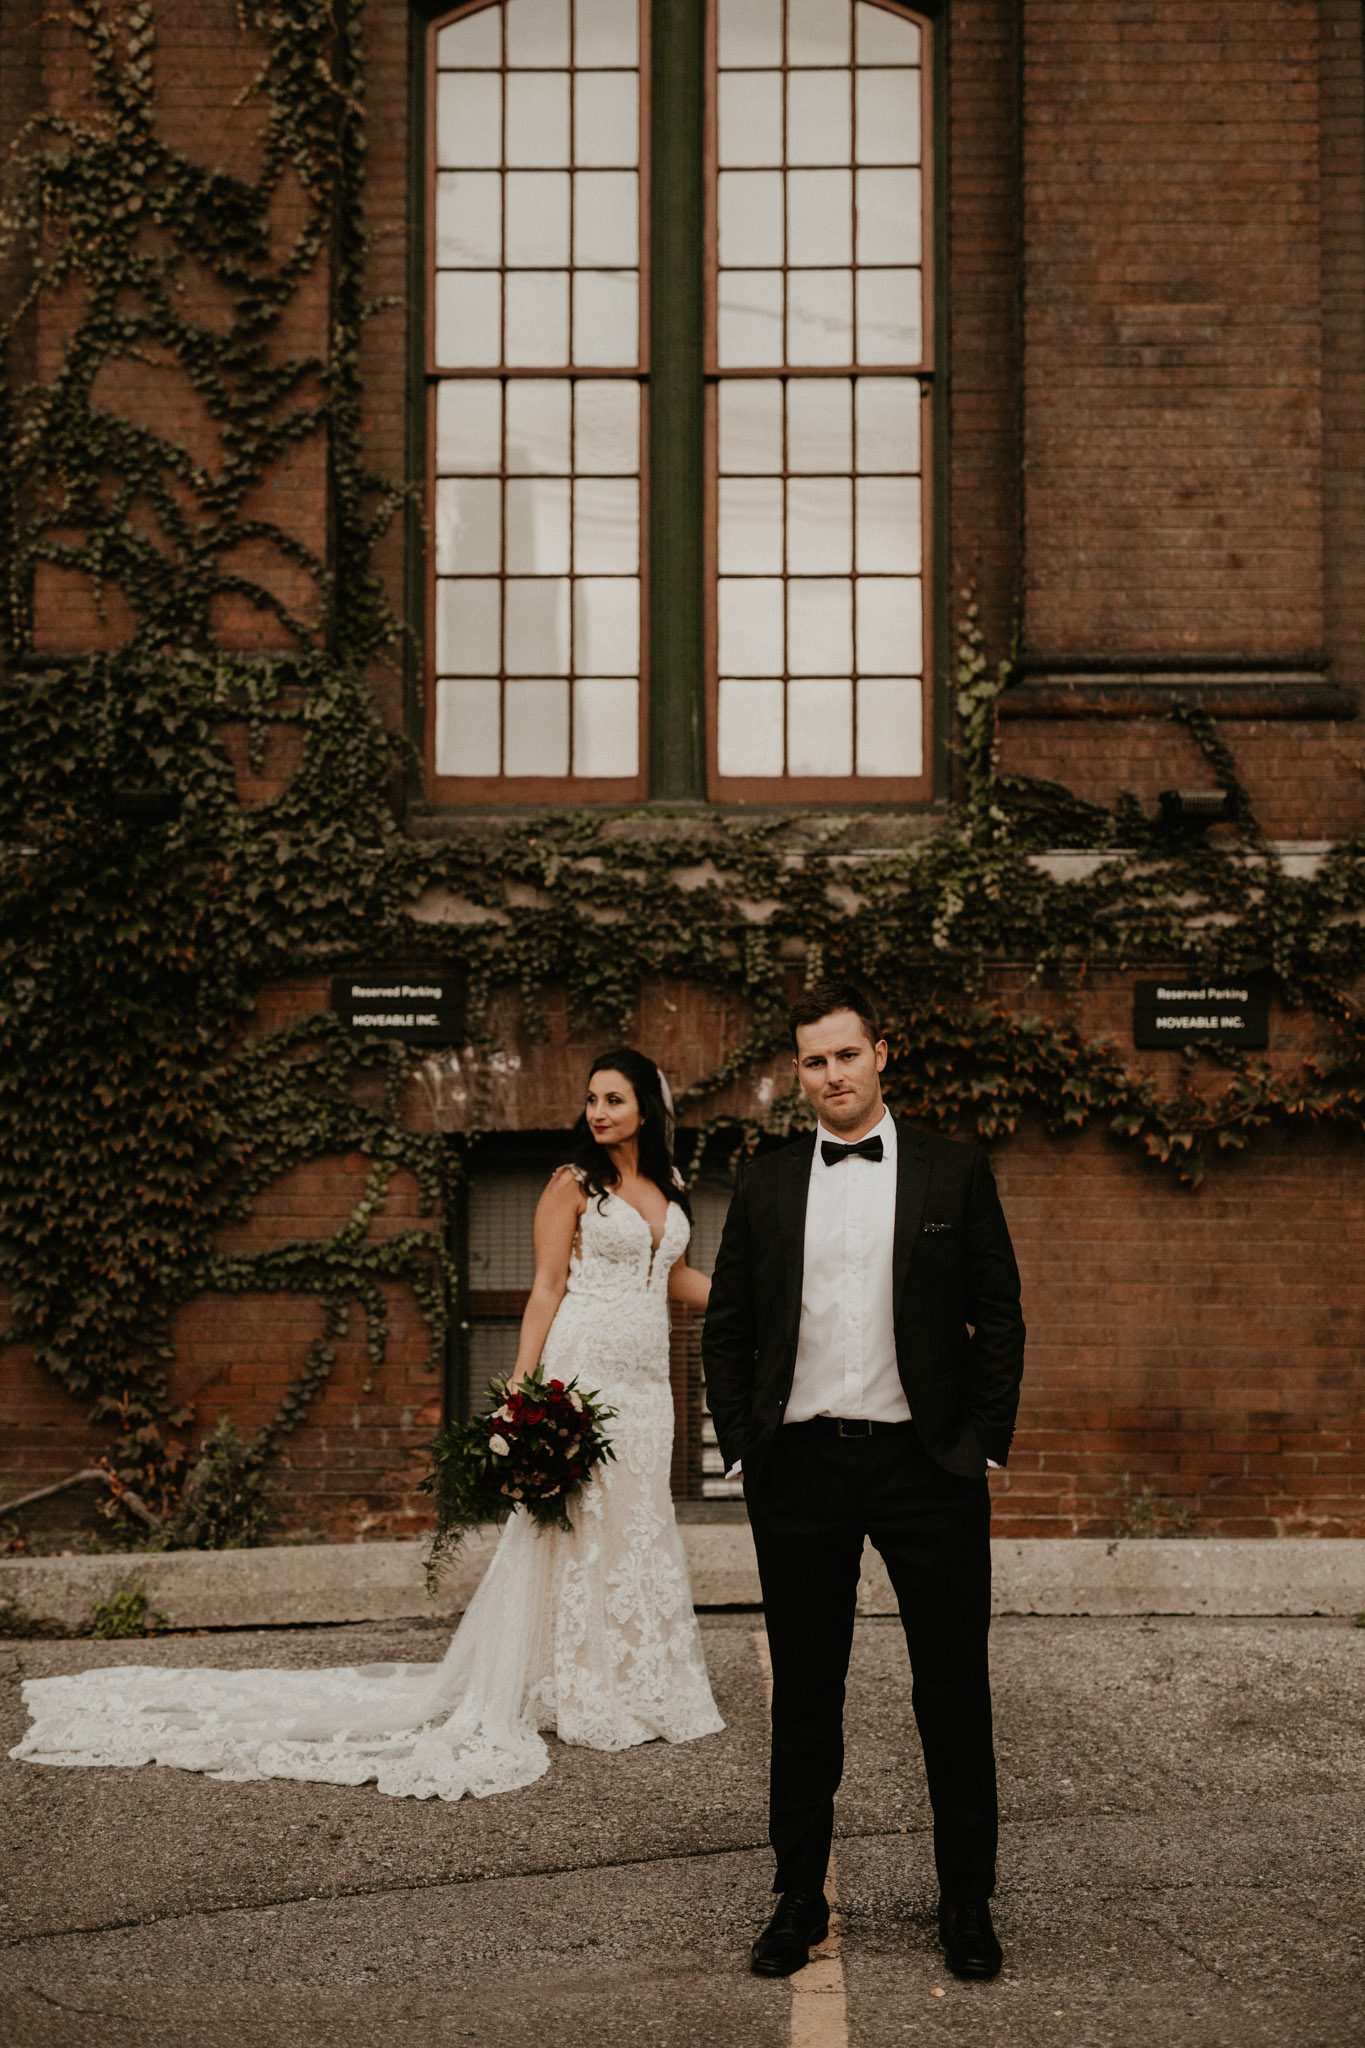 Liberty Village Wedding - Newlyweds posing in front of brick wall with ivy